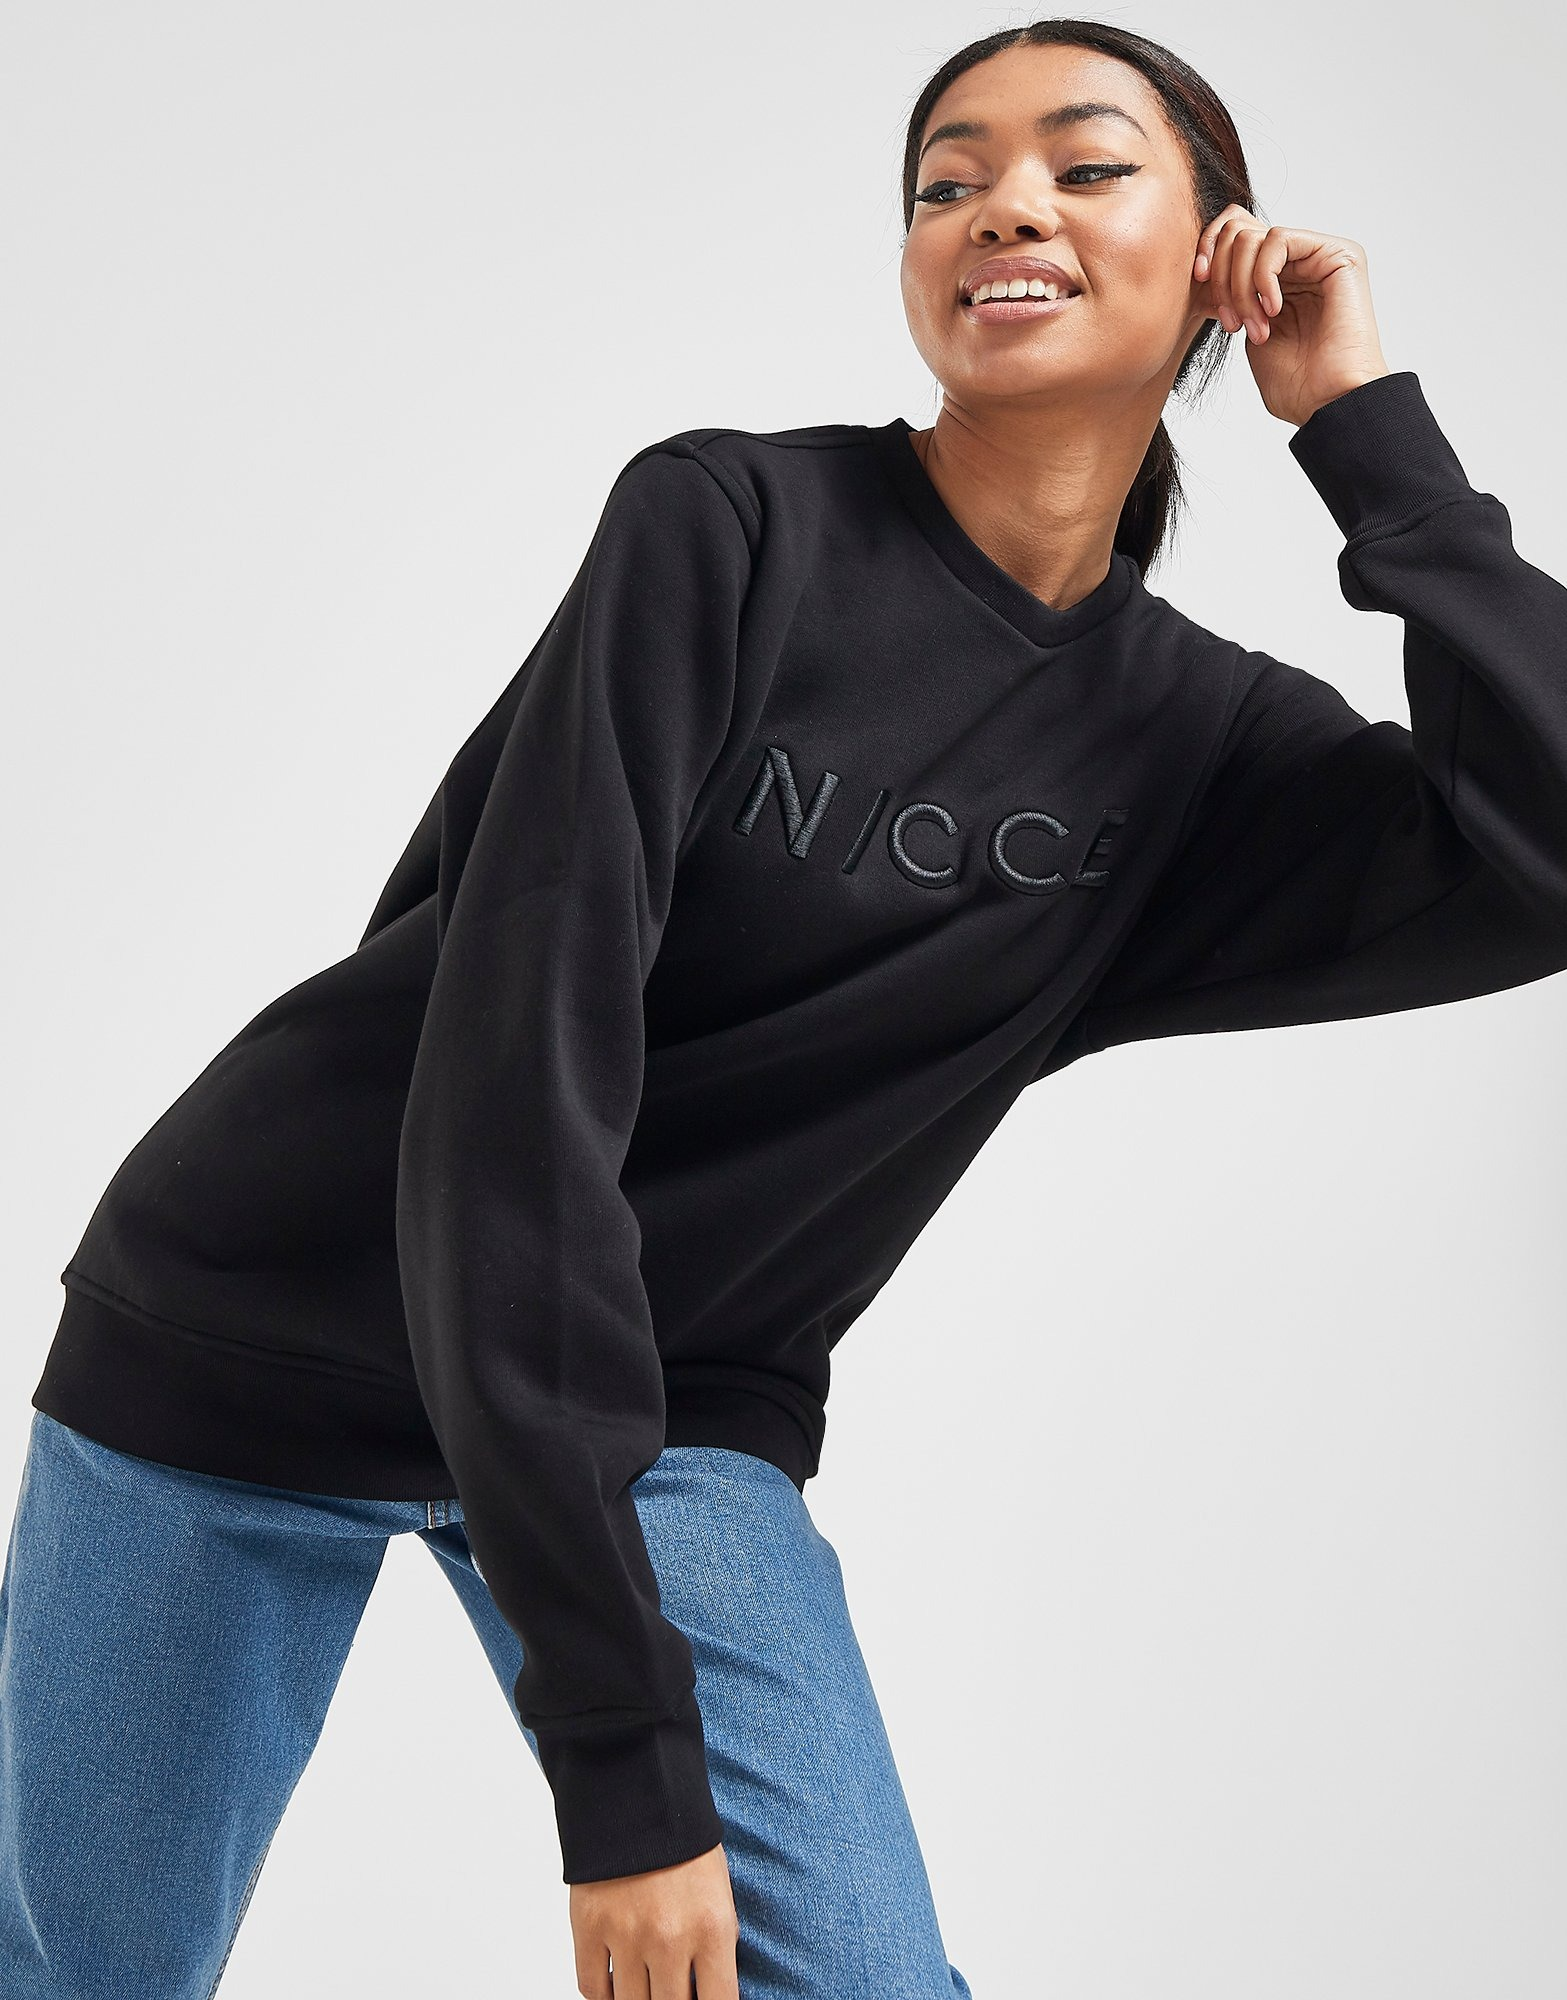 Nicce Embroidered Logo Crew Sweatshirt by Nicce